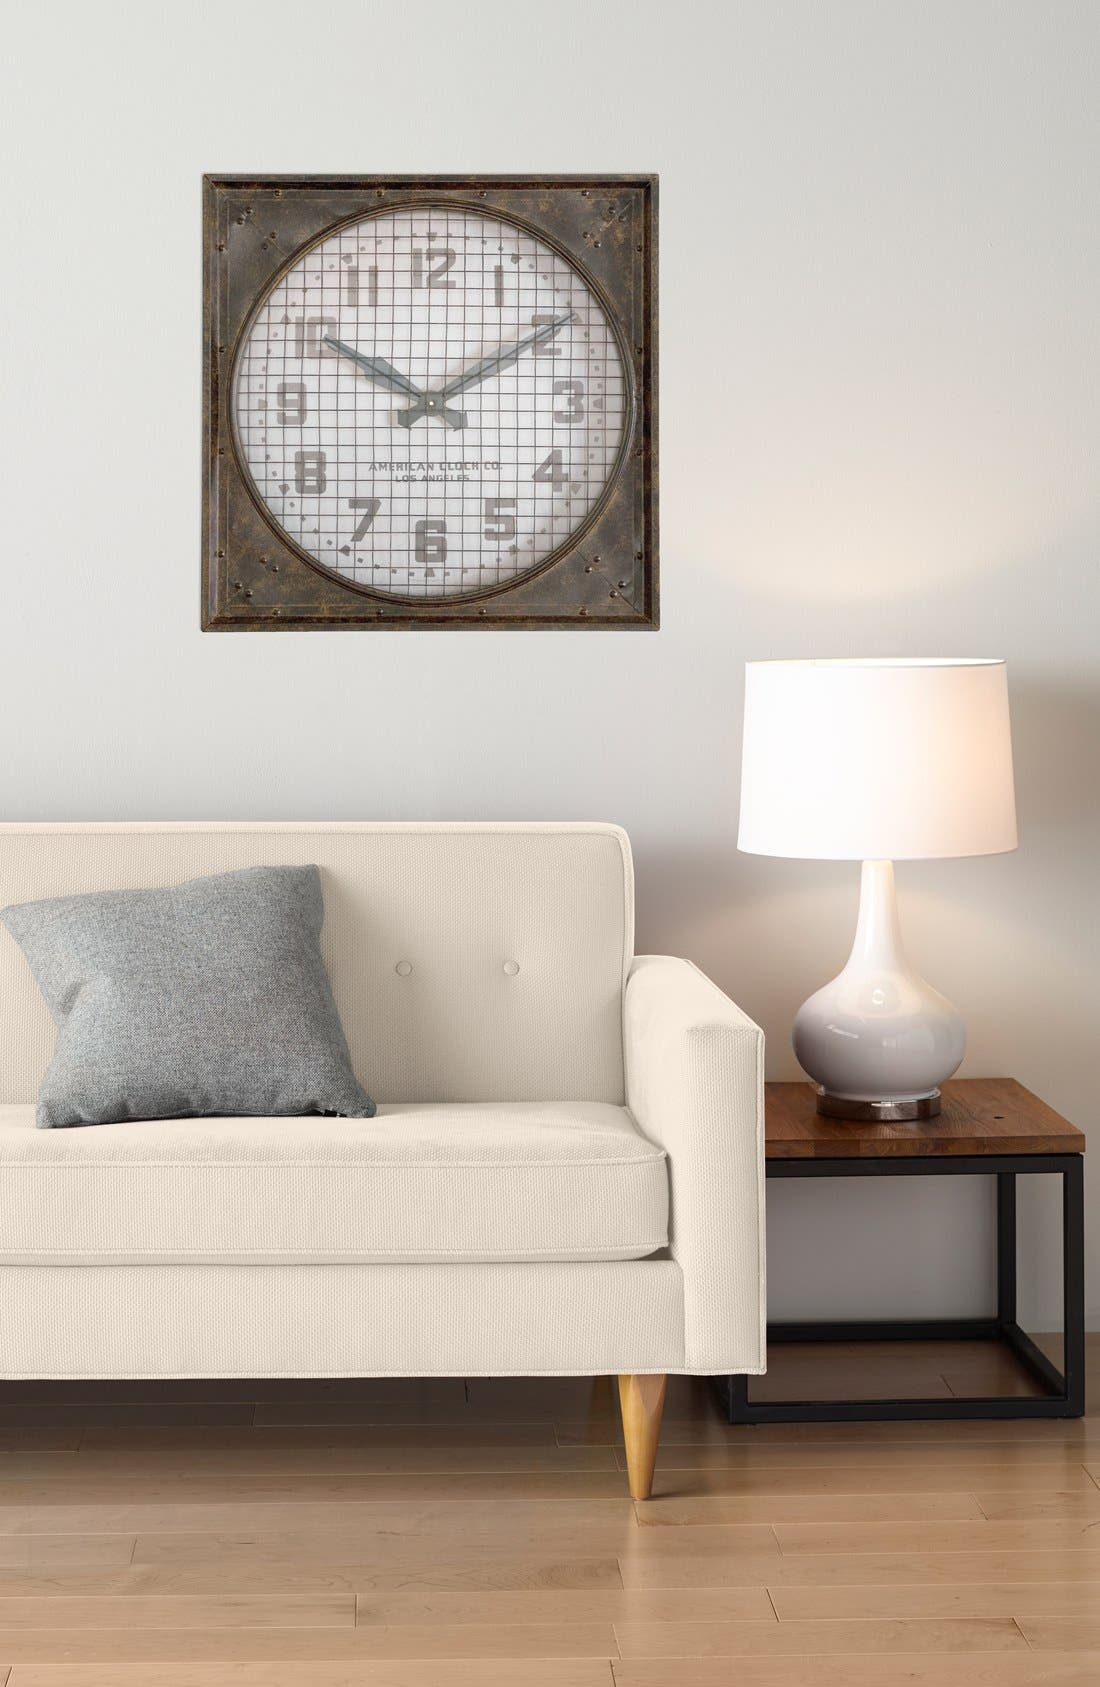 'Warehouse' Wall Clock with Grill,                             Alternate thumbnail 4, color,                             100